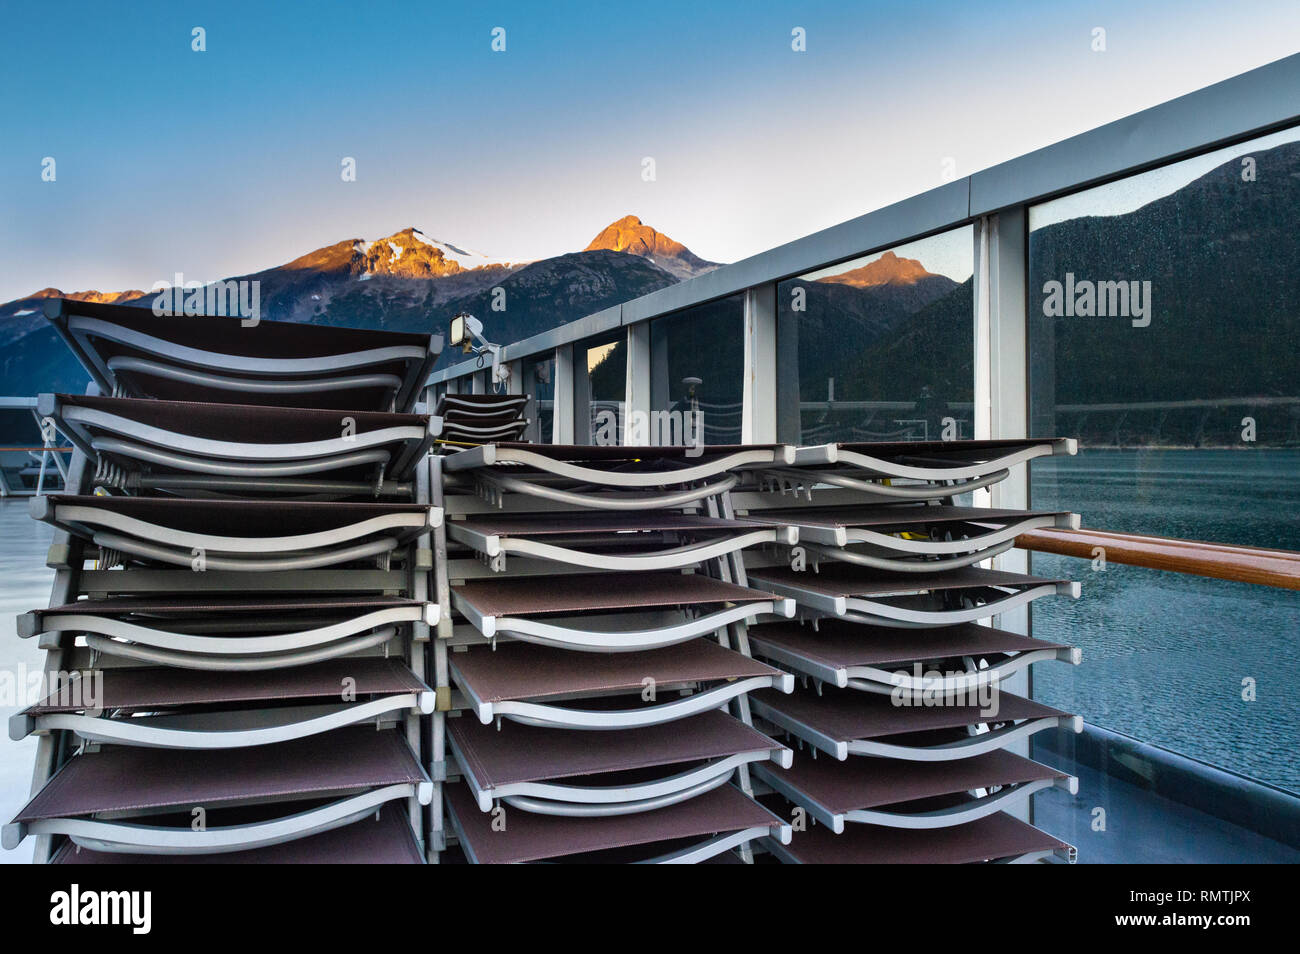 Stacked and secured lounge chairs on cruise ship outdoor deck with early morning sunrise light on mountainous background, near Skagway, Alaska, USA. - Stock Image